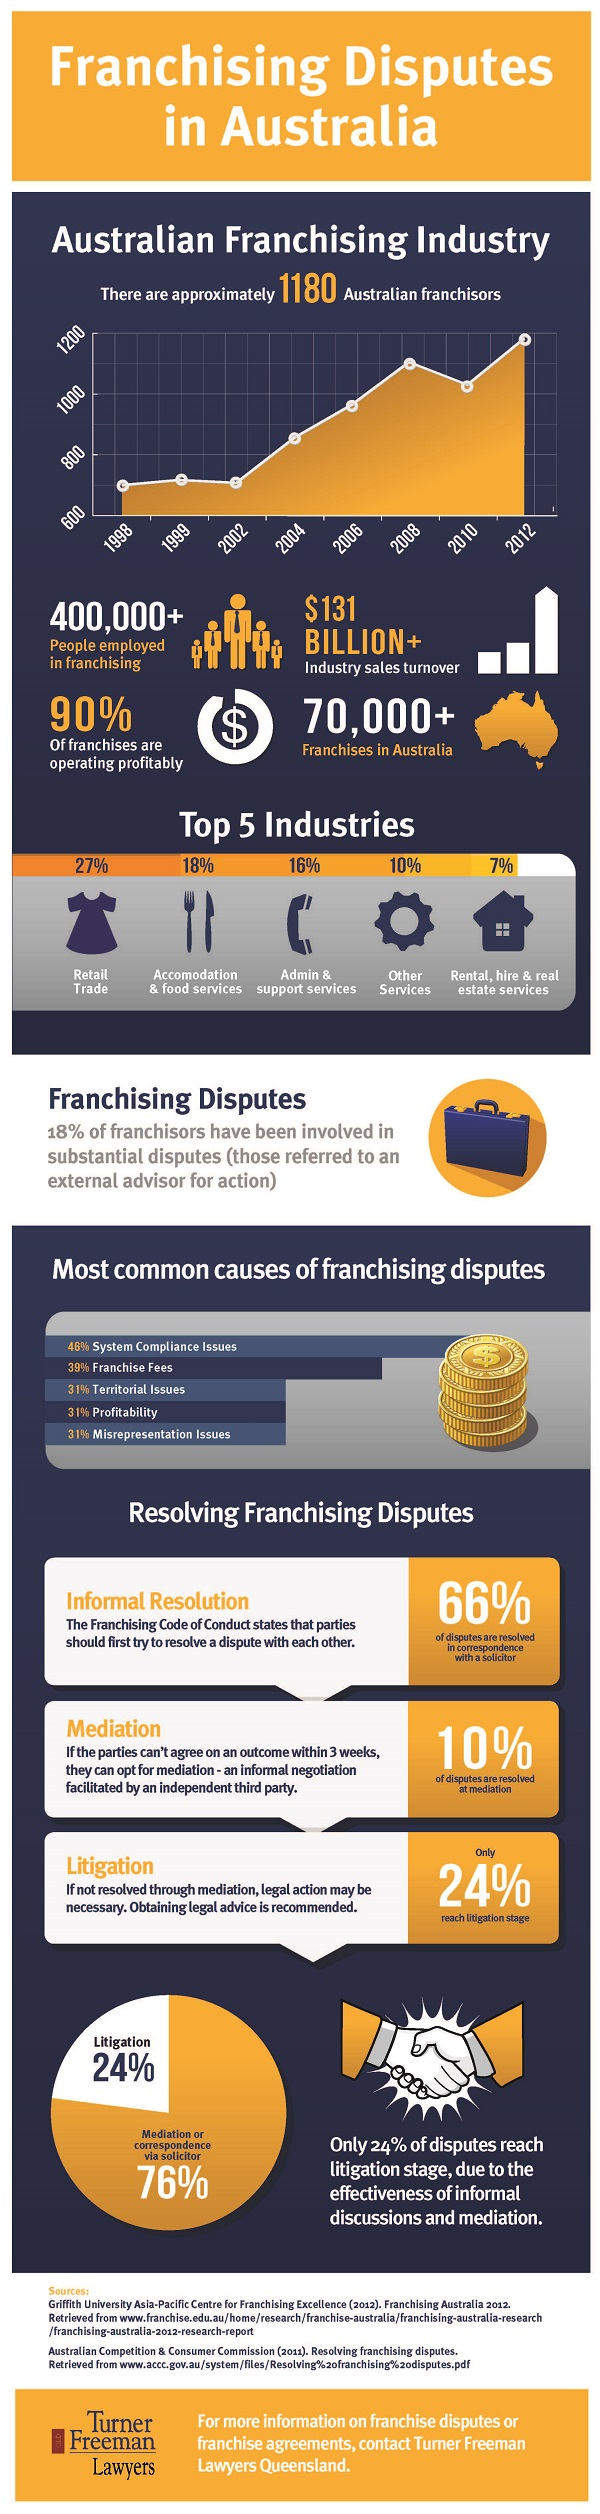 Franchising Disputes in Australia